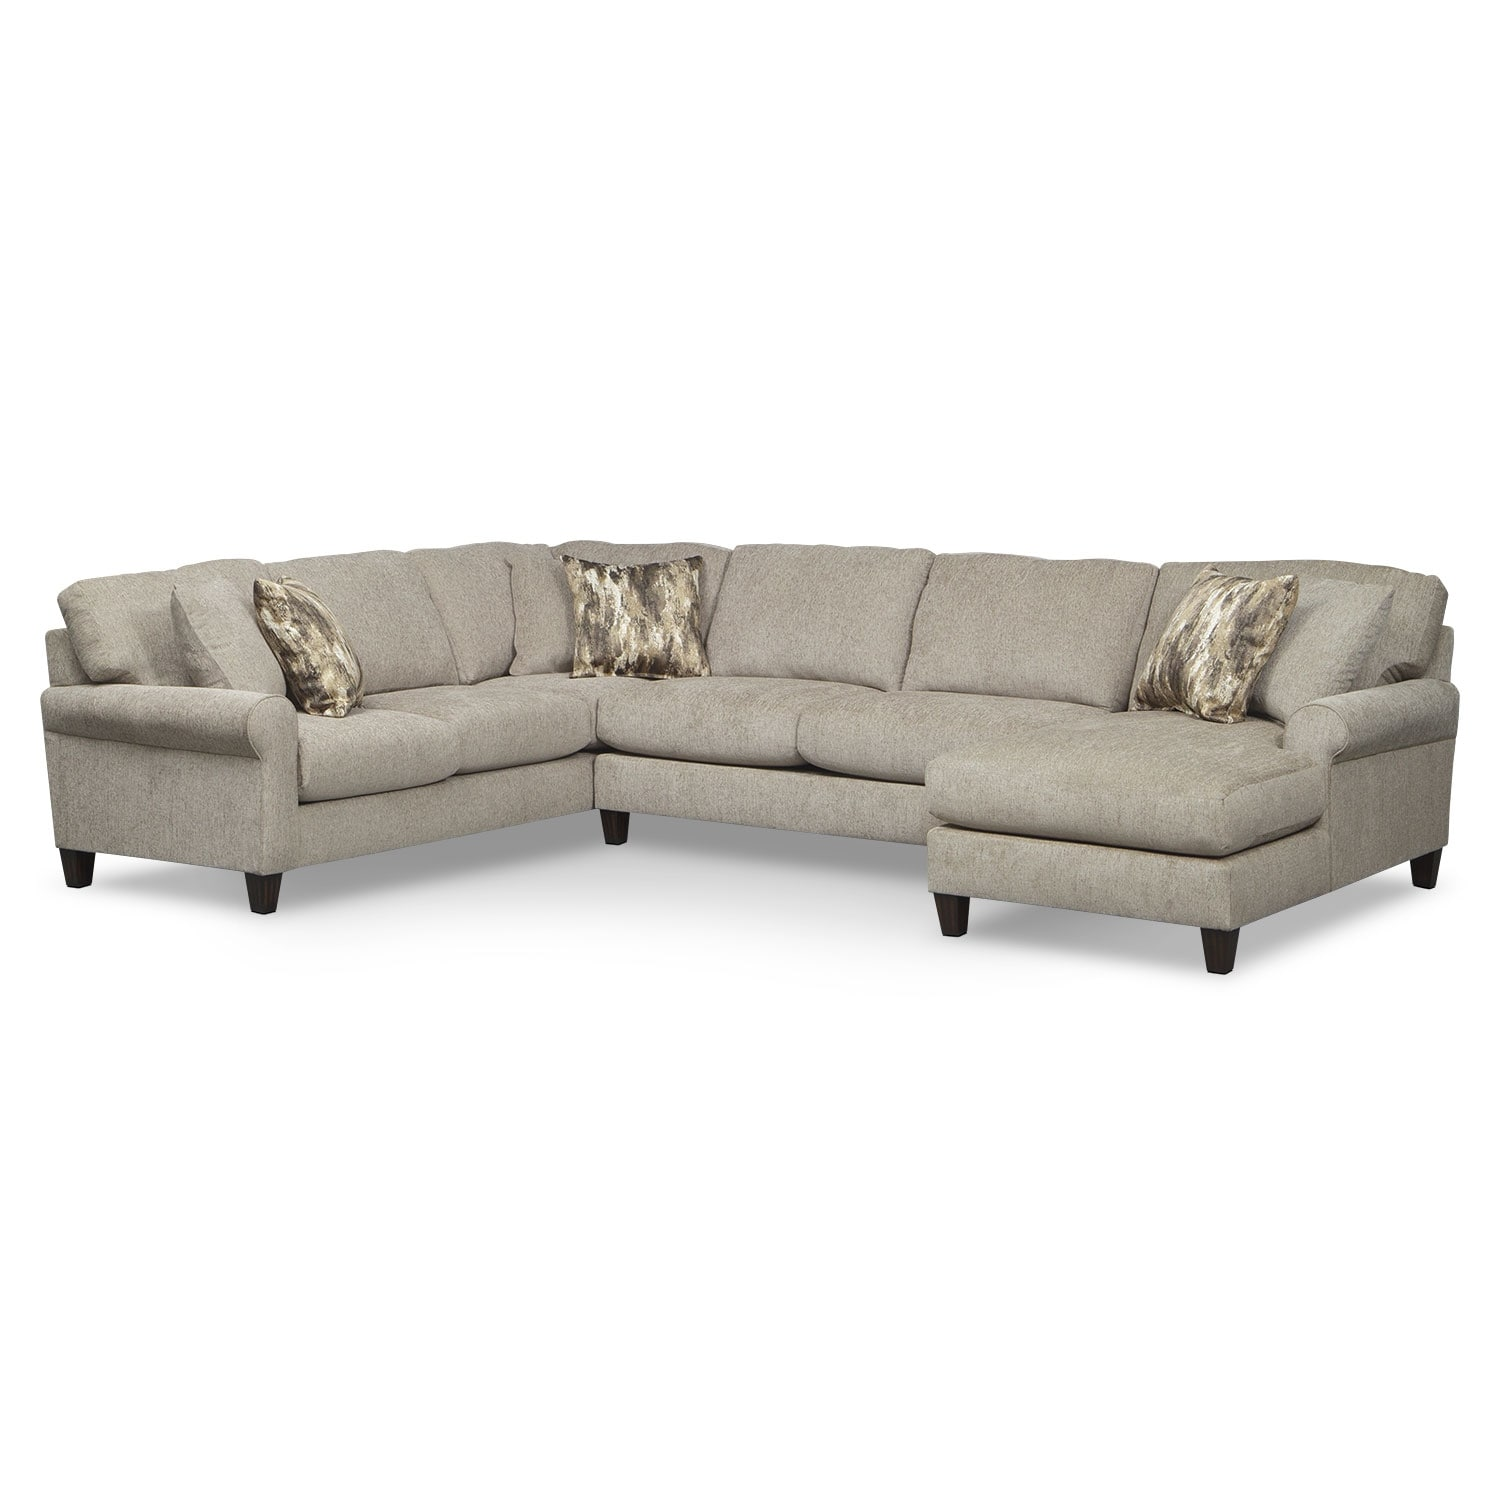 Living Room Furniture - Karma 3-Piece Right-Facing Sectional - Mink